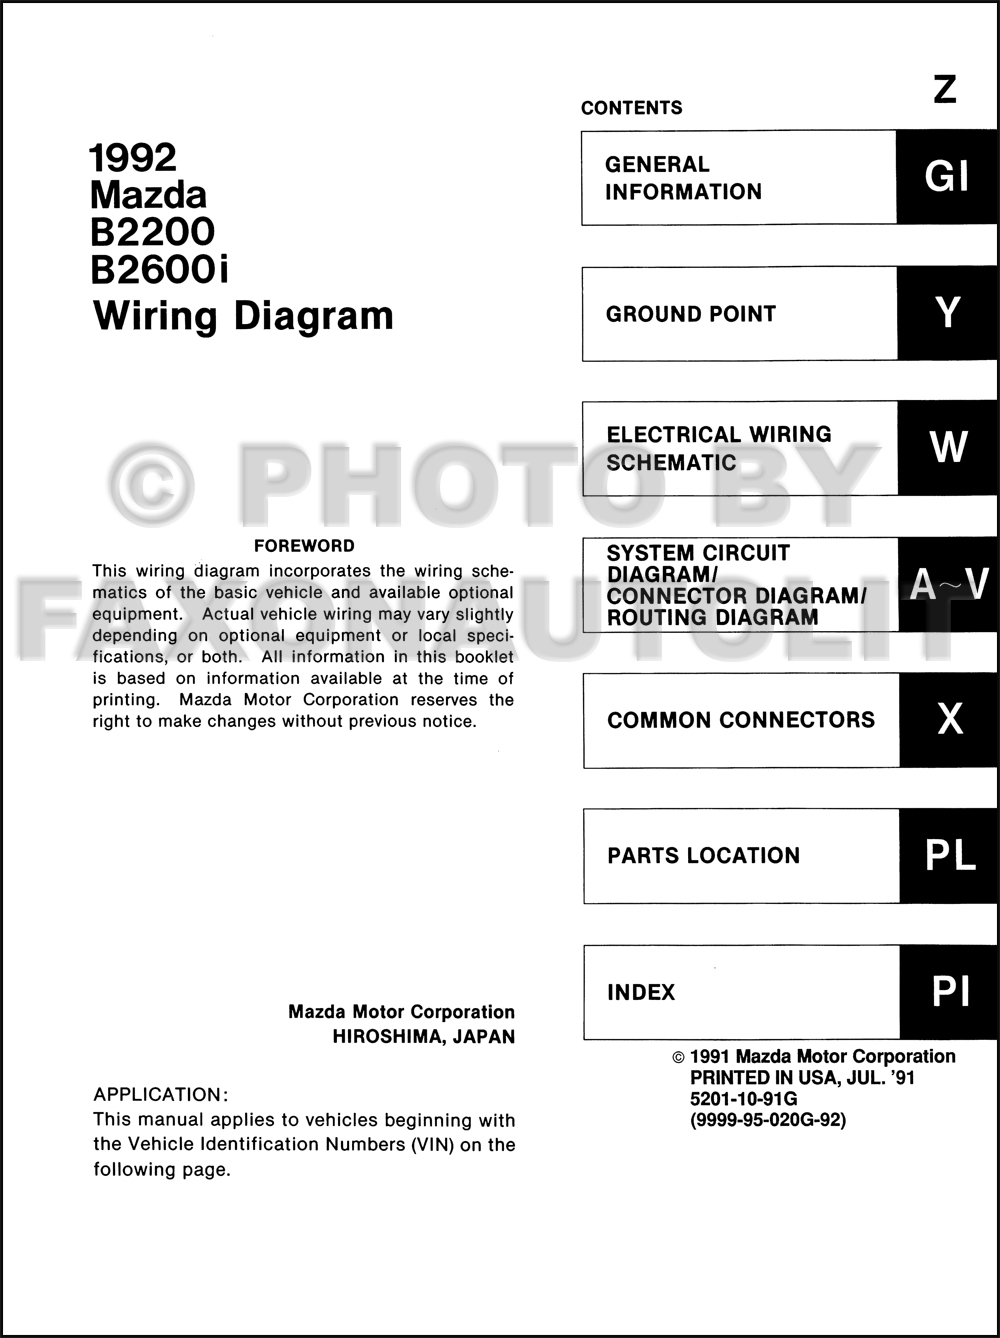 1983 Mazda Rx7 Wiring Diagram Detailed Schematics 93 Rx 7 Harness 1992 B2200 B2600i Pickup Truck Manual Original Engine